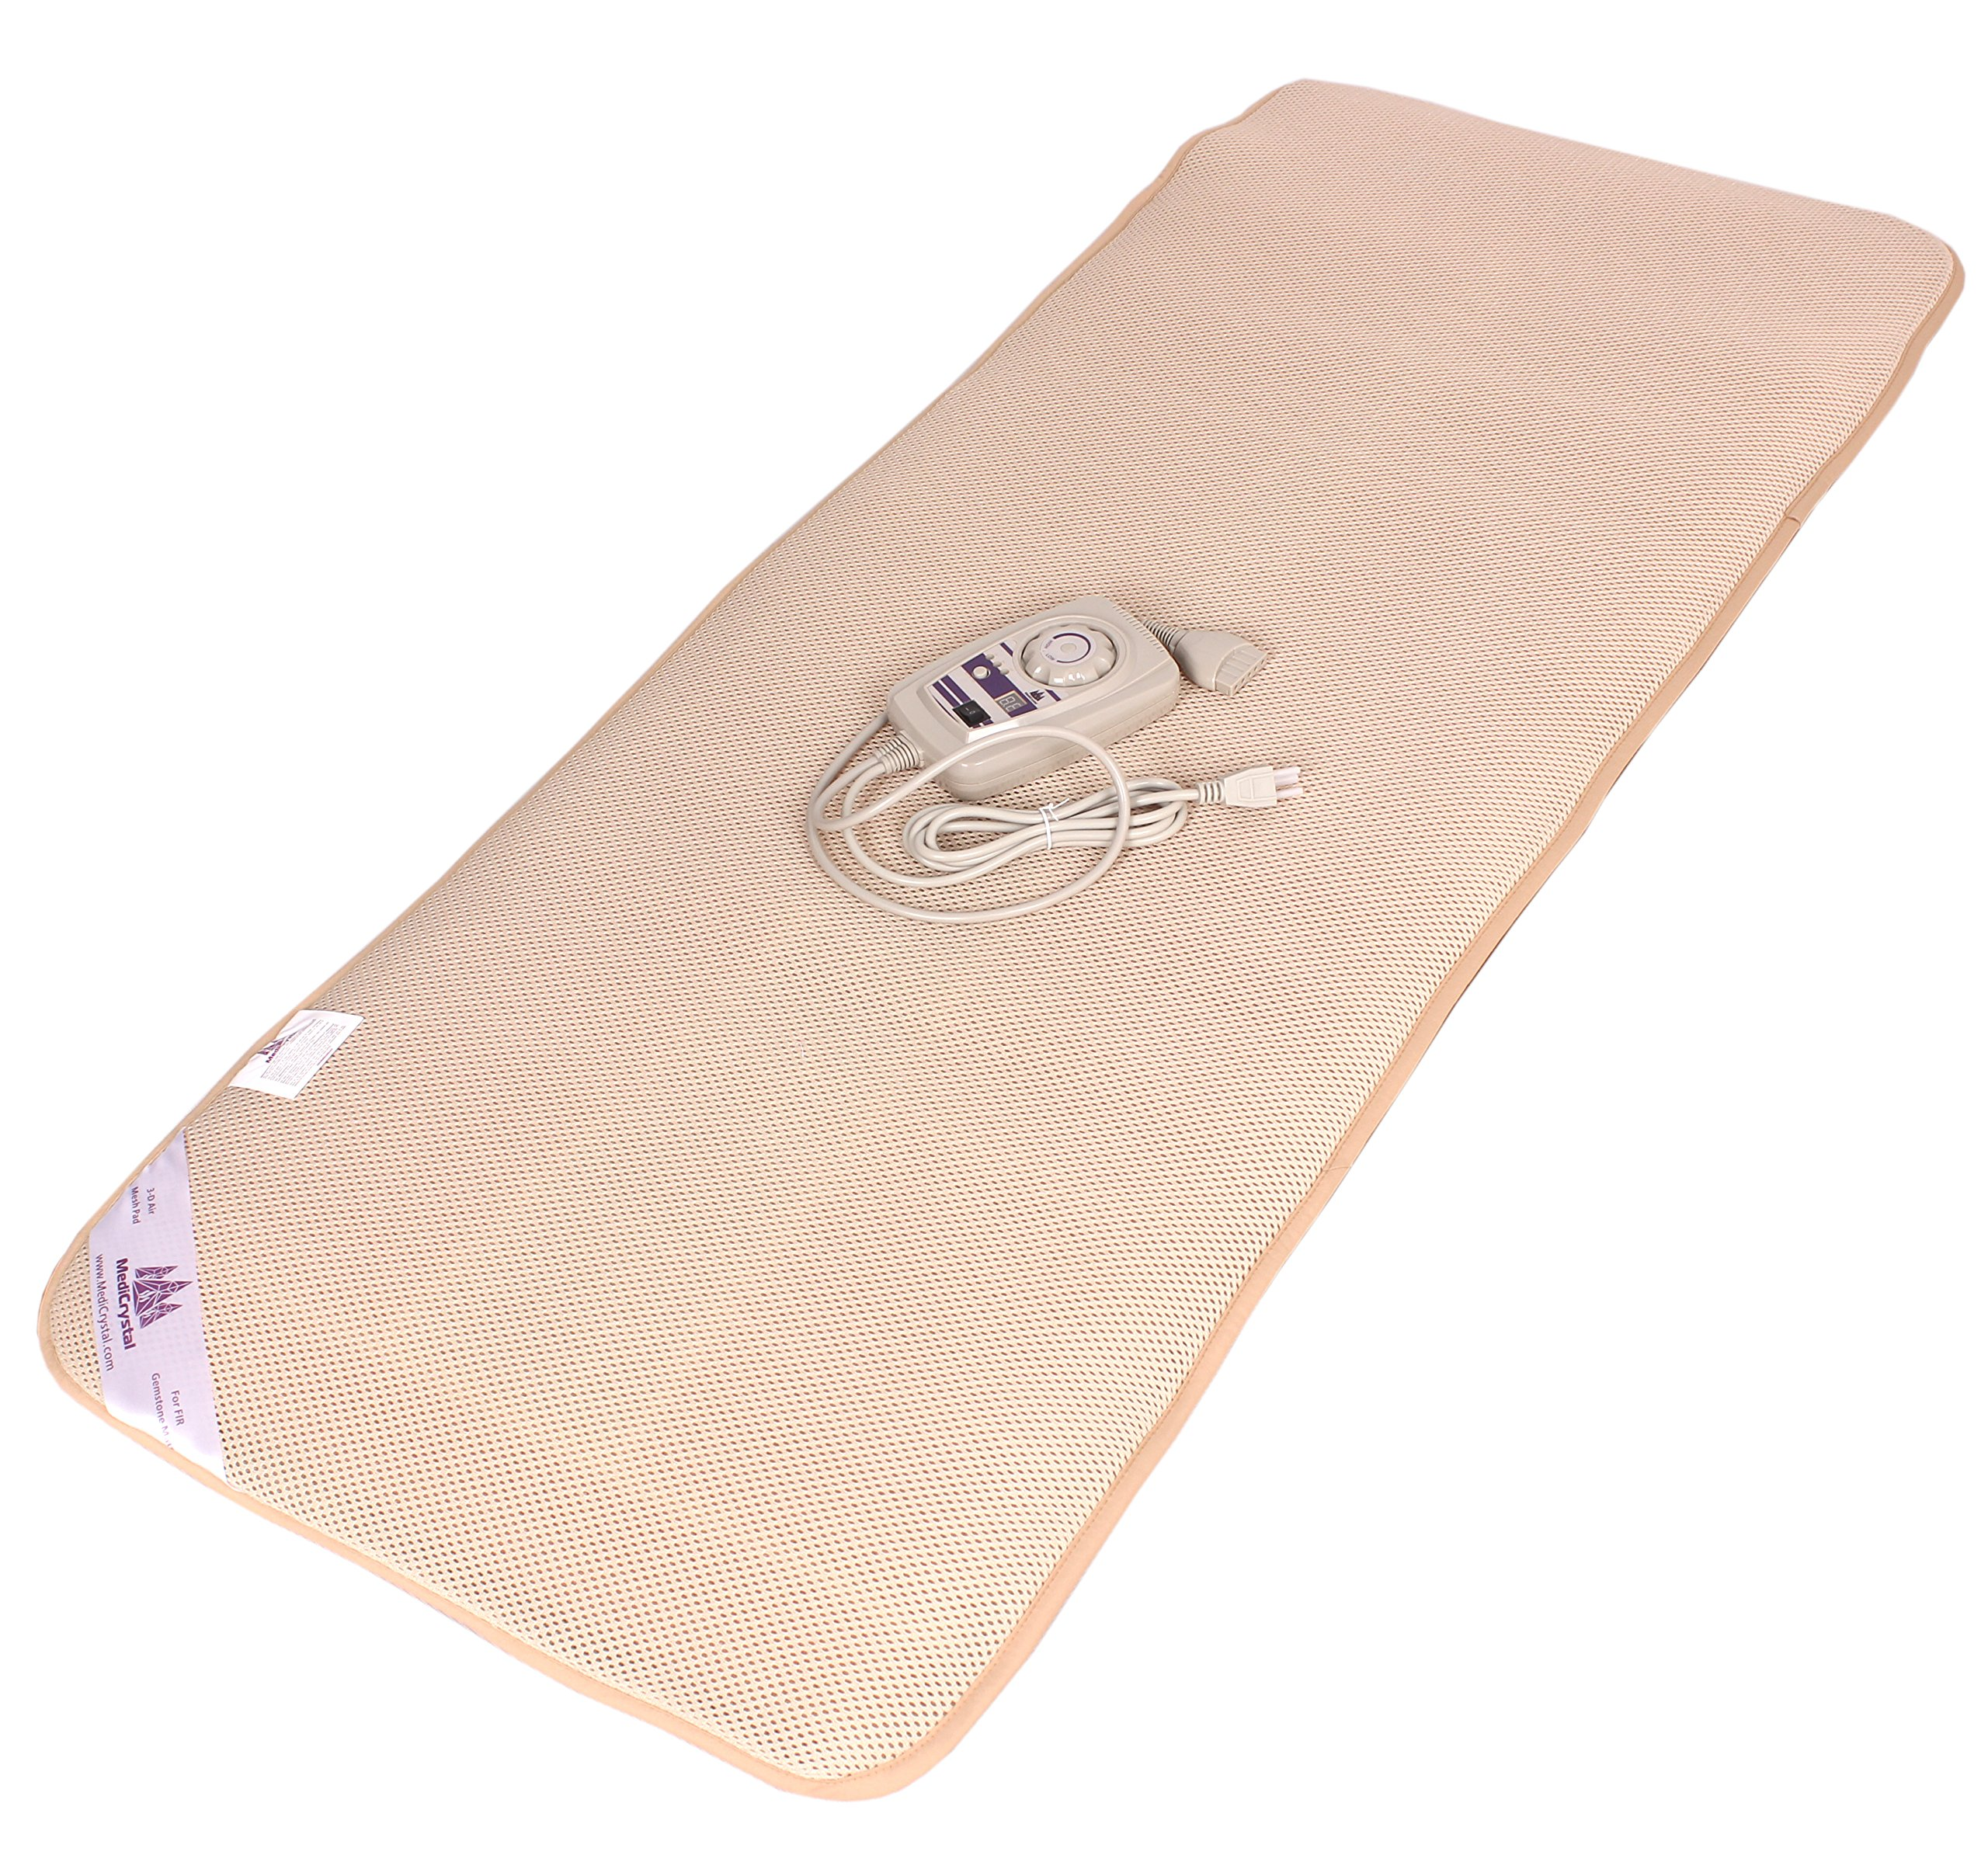 Far Infrared Amethyst Mat Midsize (59''L x 24''W) - Negative Ion - FIR Therapy - Natural Amethyst - FDA Registered Manufacturer - Adjustable Temperature Setting - Hot Crystal Heating Pad - Reddish Brown by MediCrystal (Image #6)